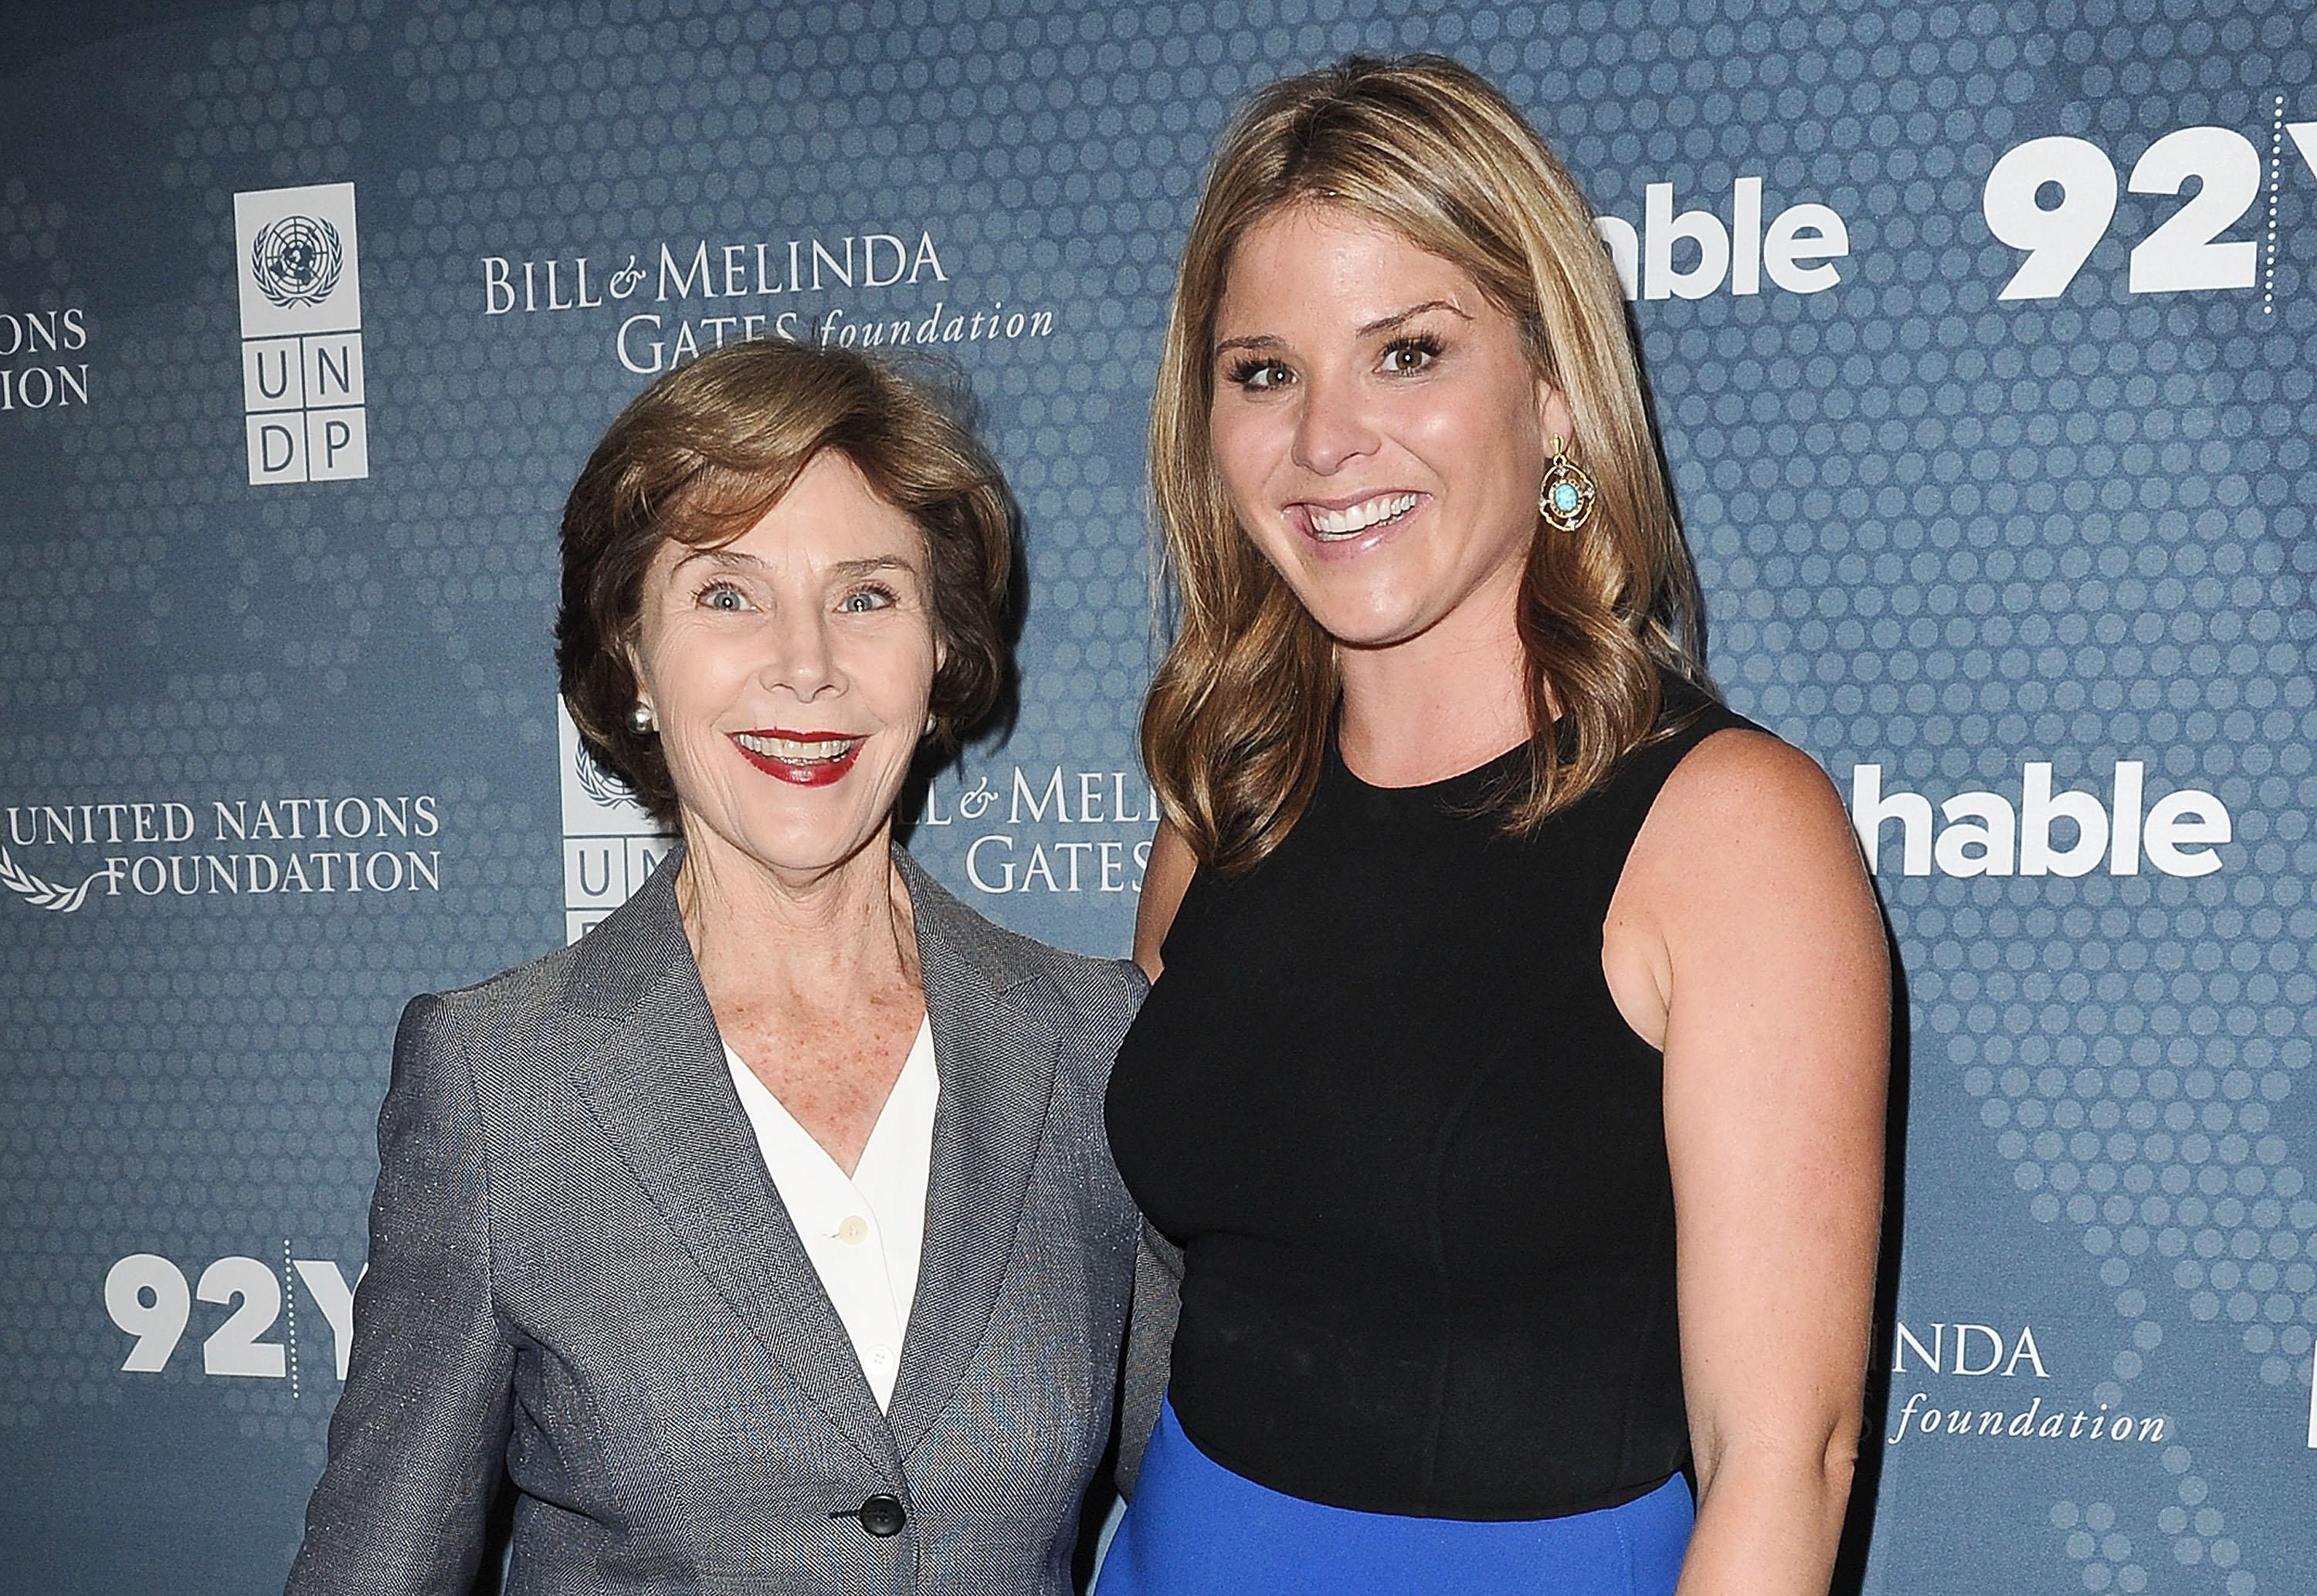 Laura Bush and Jenna Bush Hager attend the 2014 Social Good Summit at 92Y on September 22, 2014 in New York City.